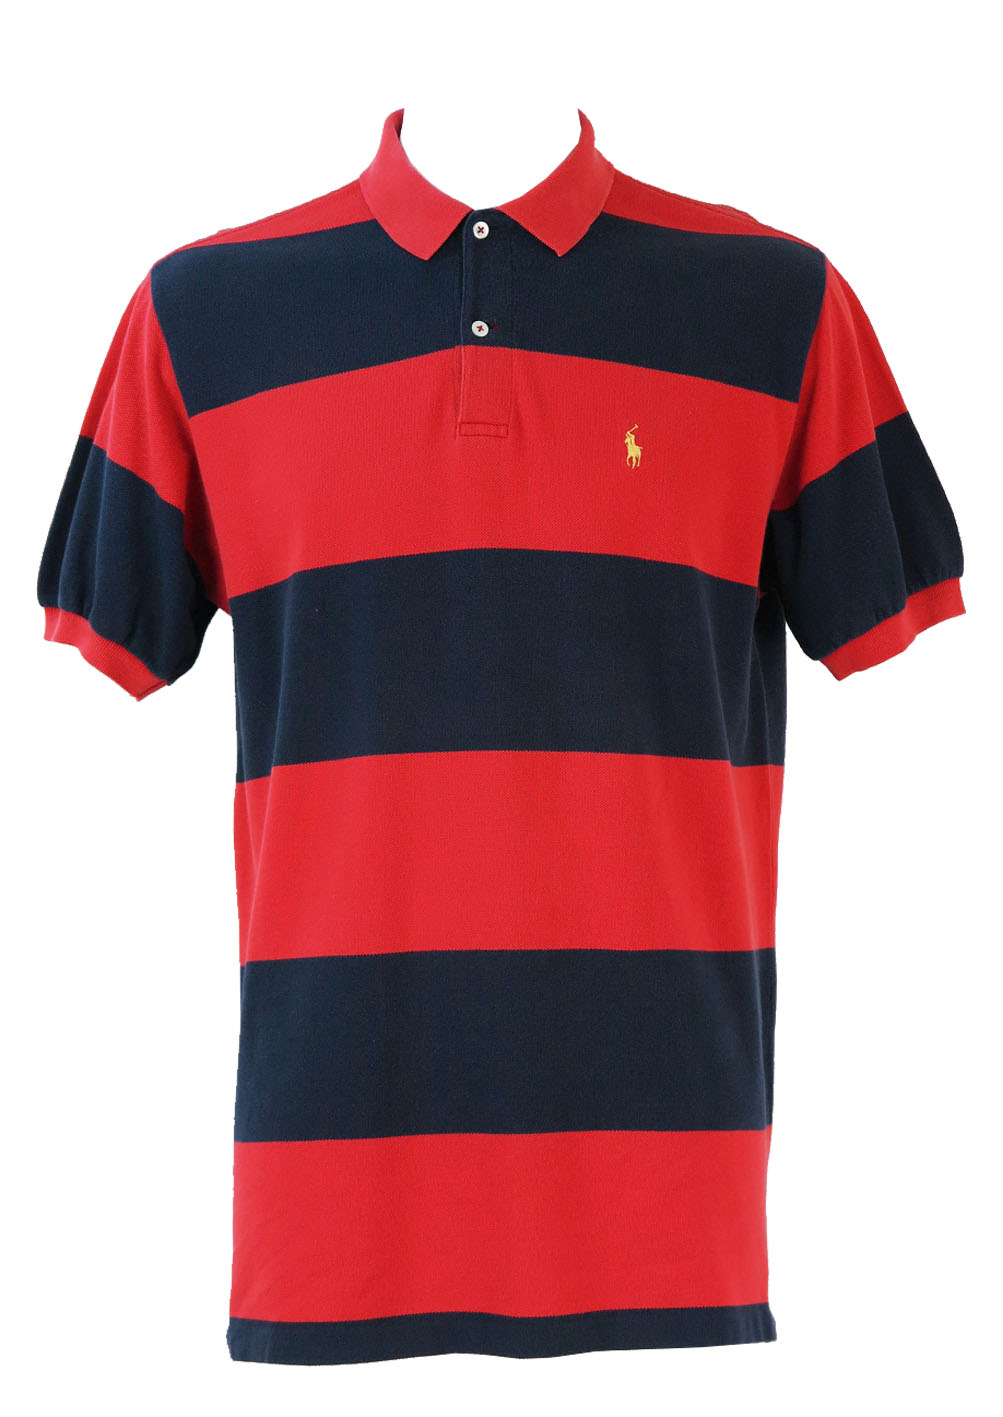 Polo by ralph lauren blue red striped polo shirt l for Red white striped polo shirt